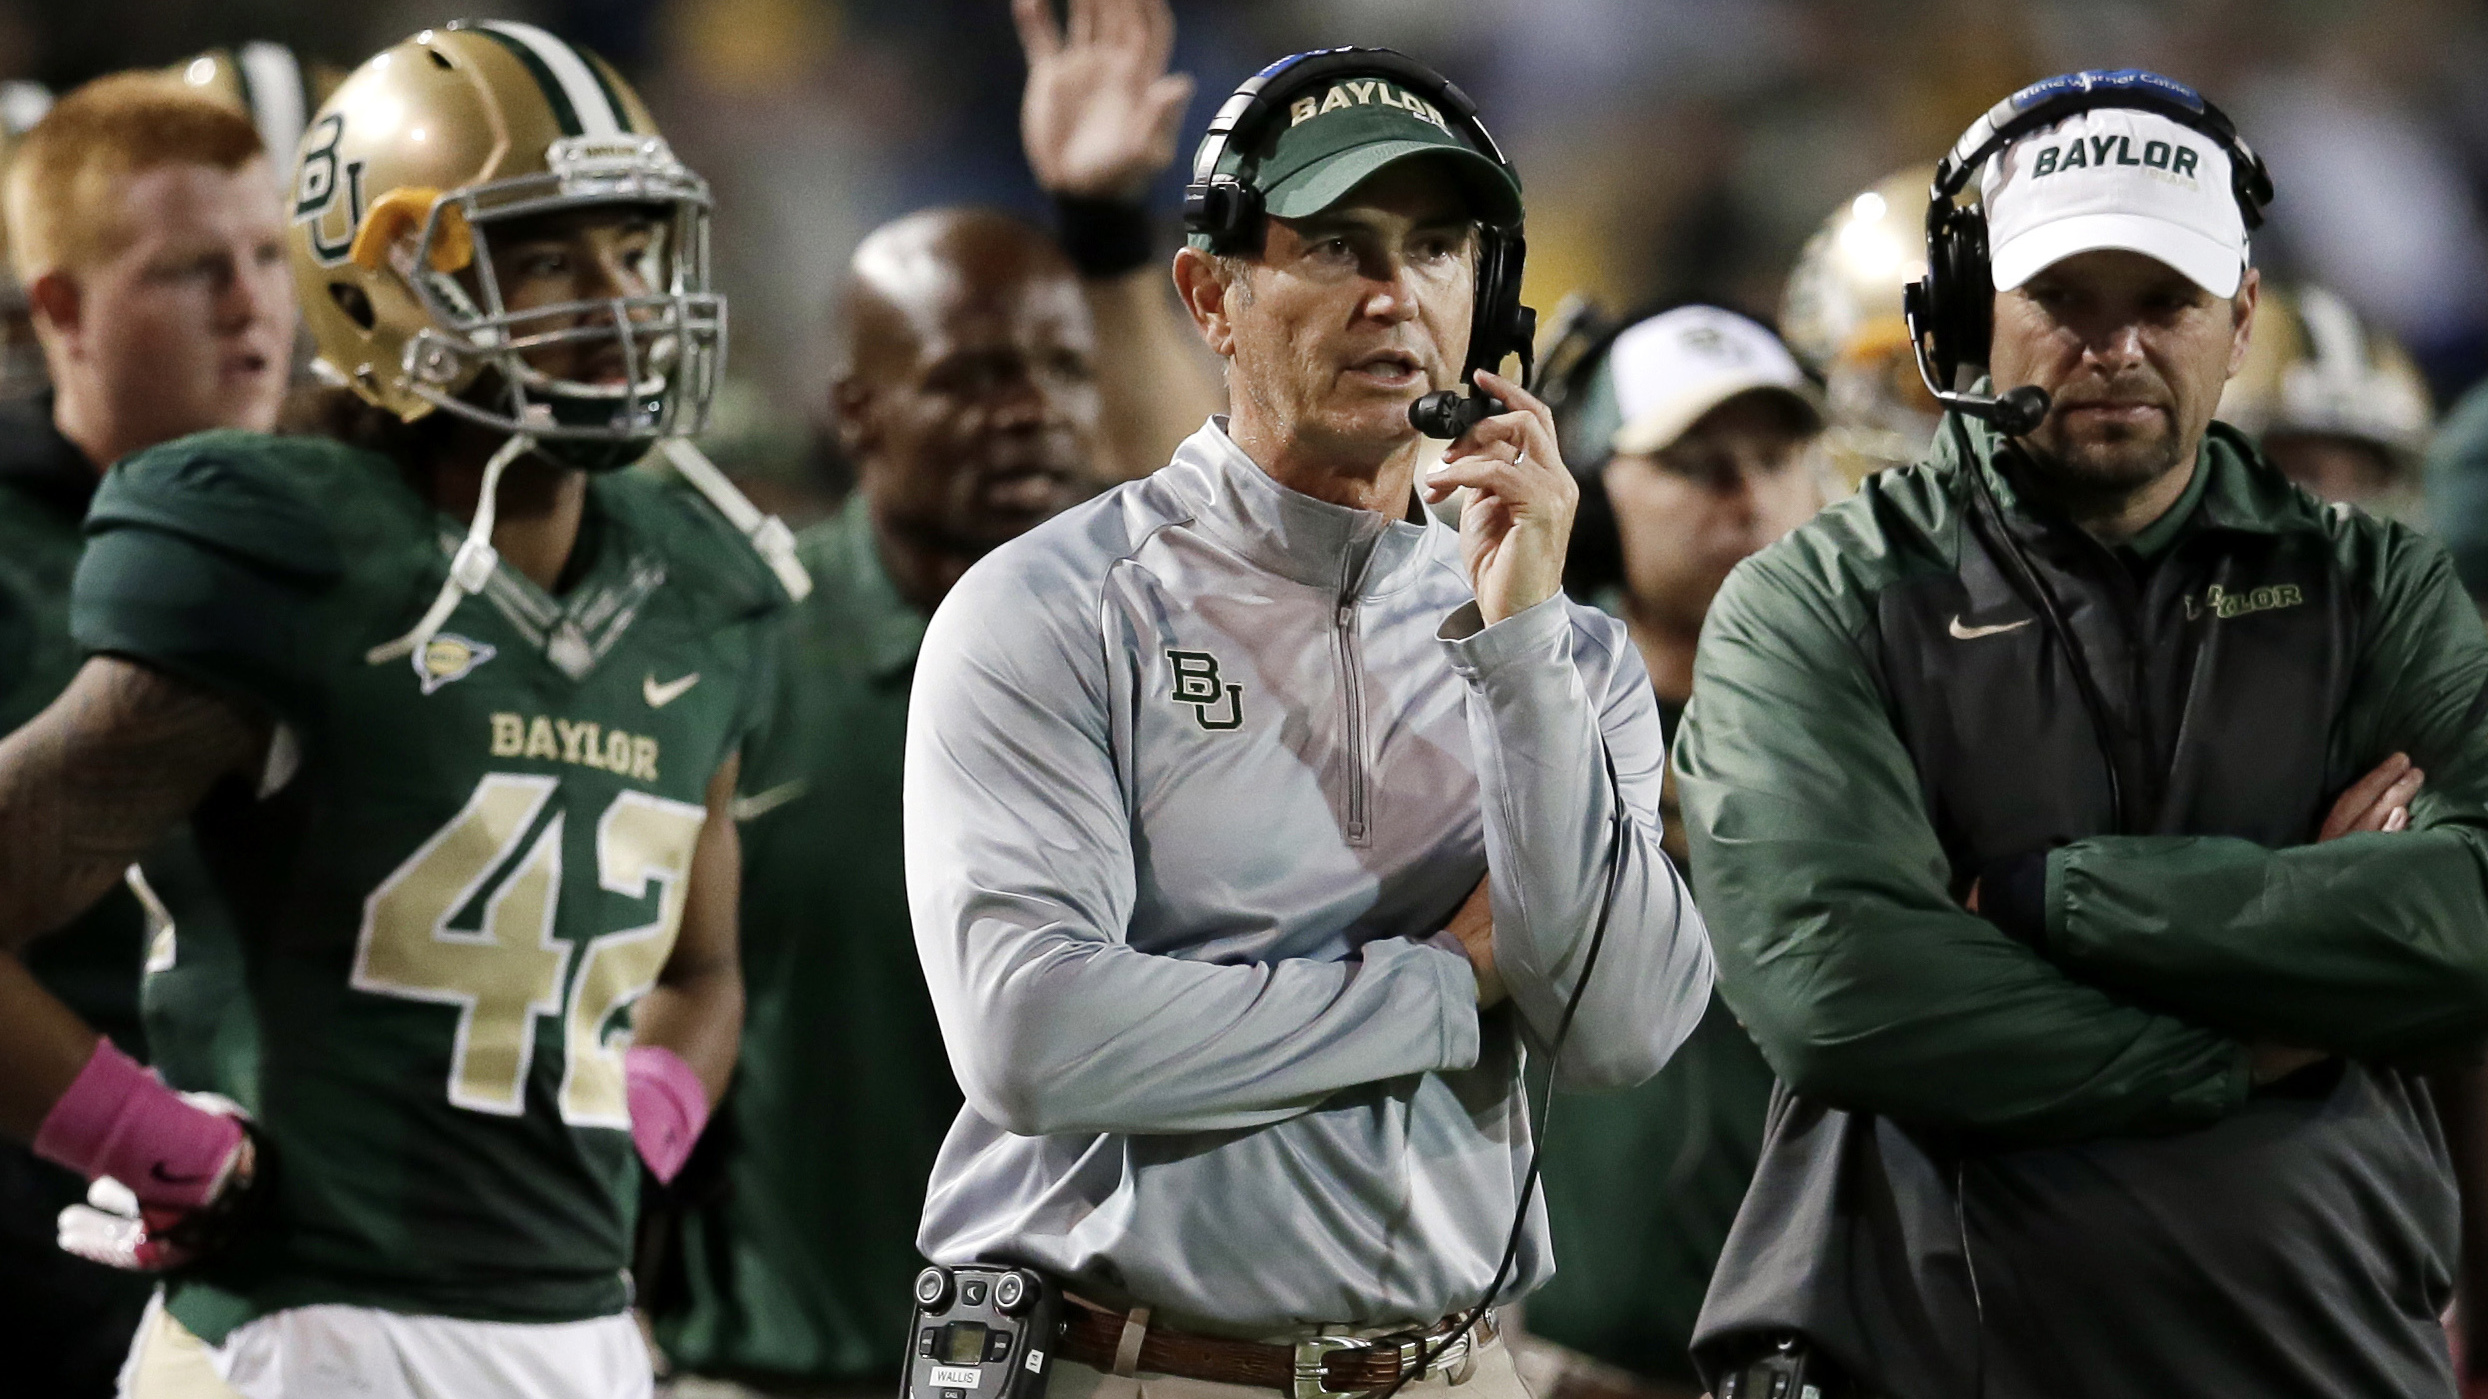 Baylor regents: 17 women reported assaults by 19 players